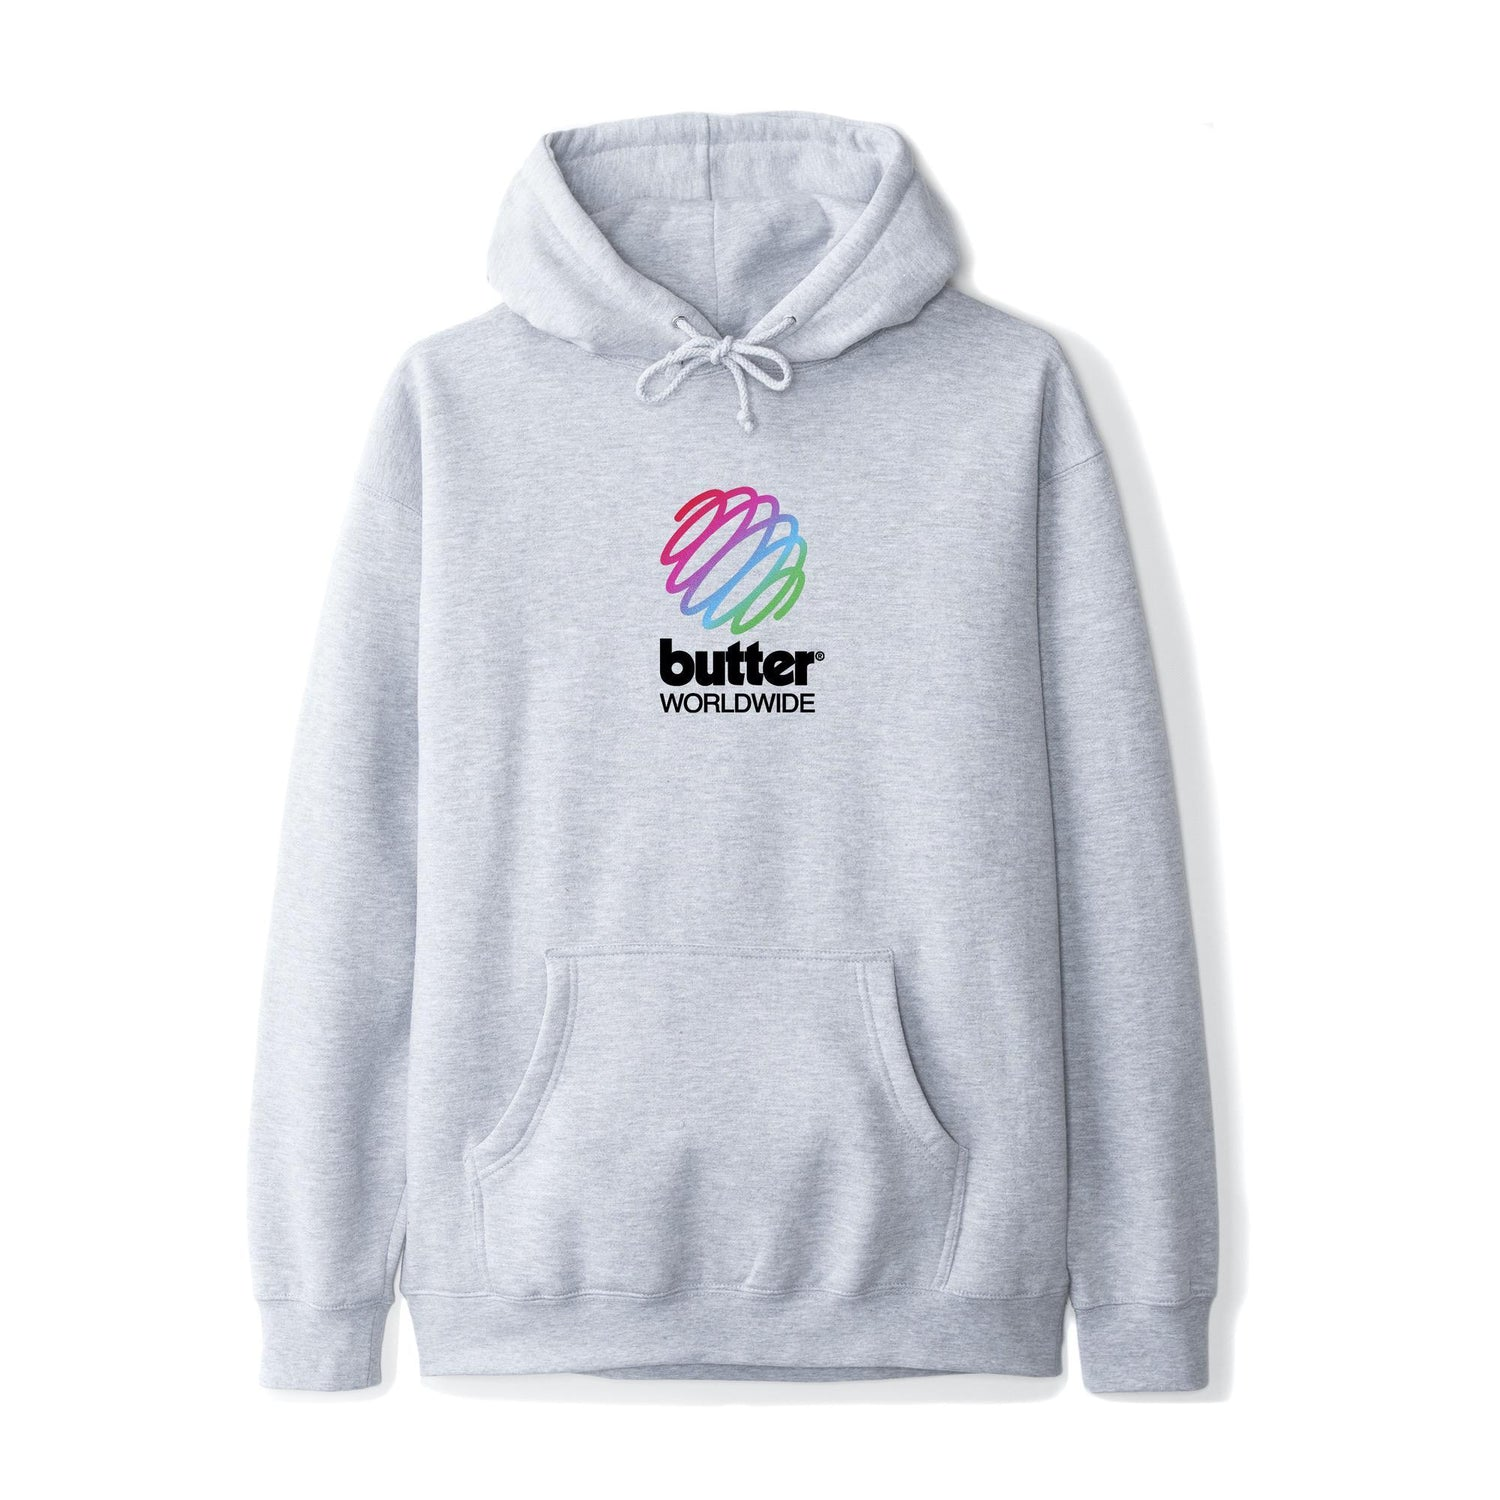 Telecom Pullover, Heather Grey